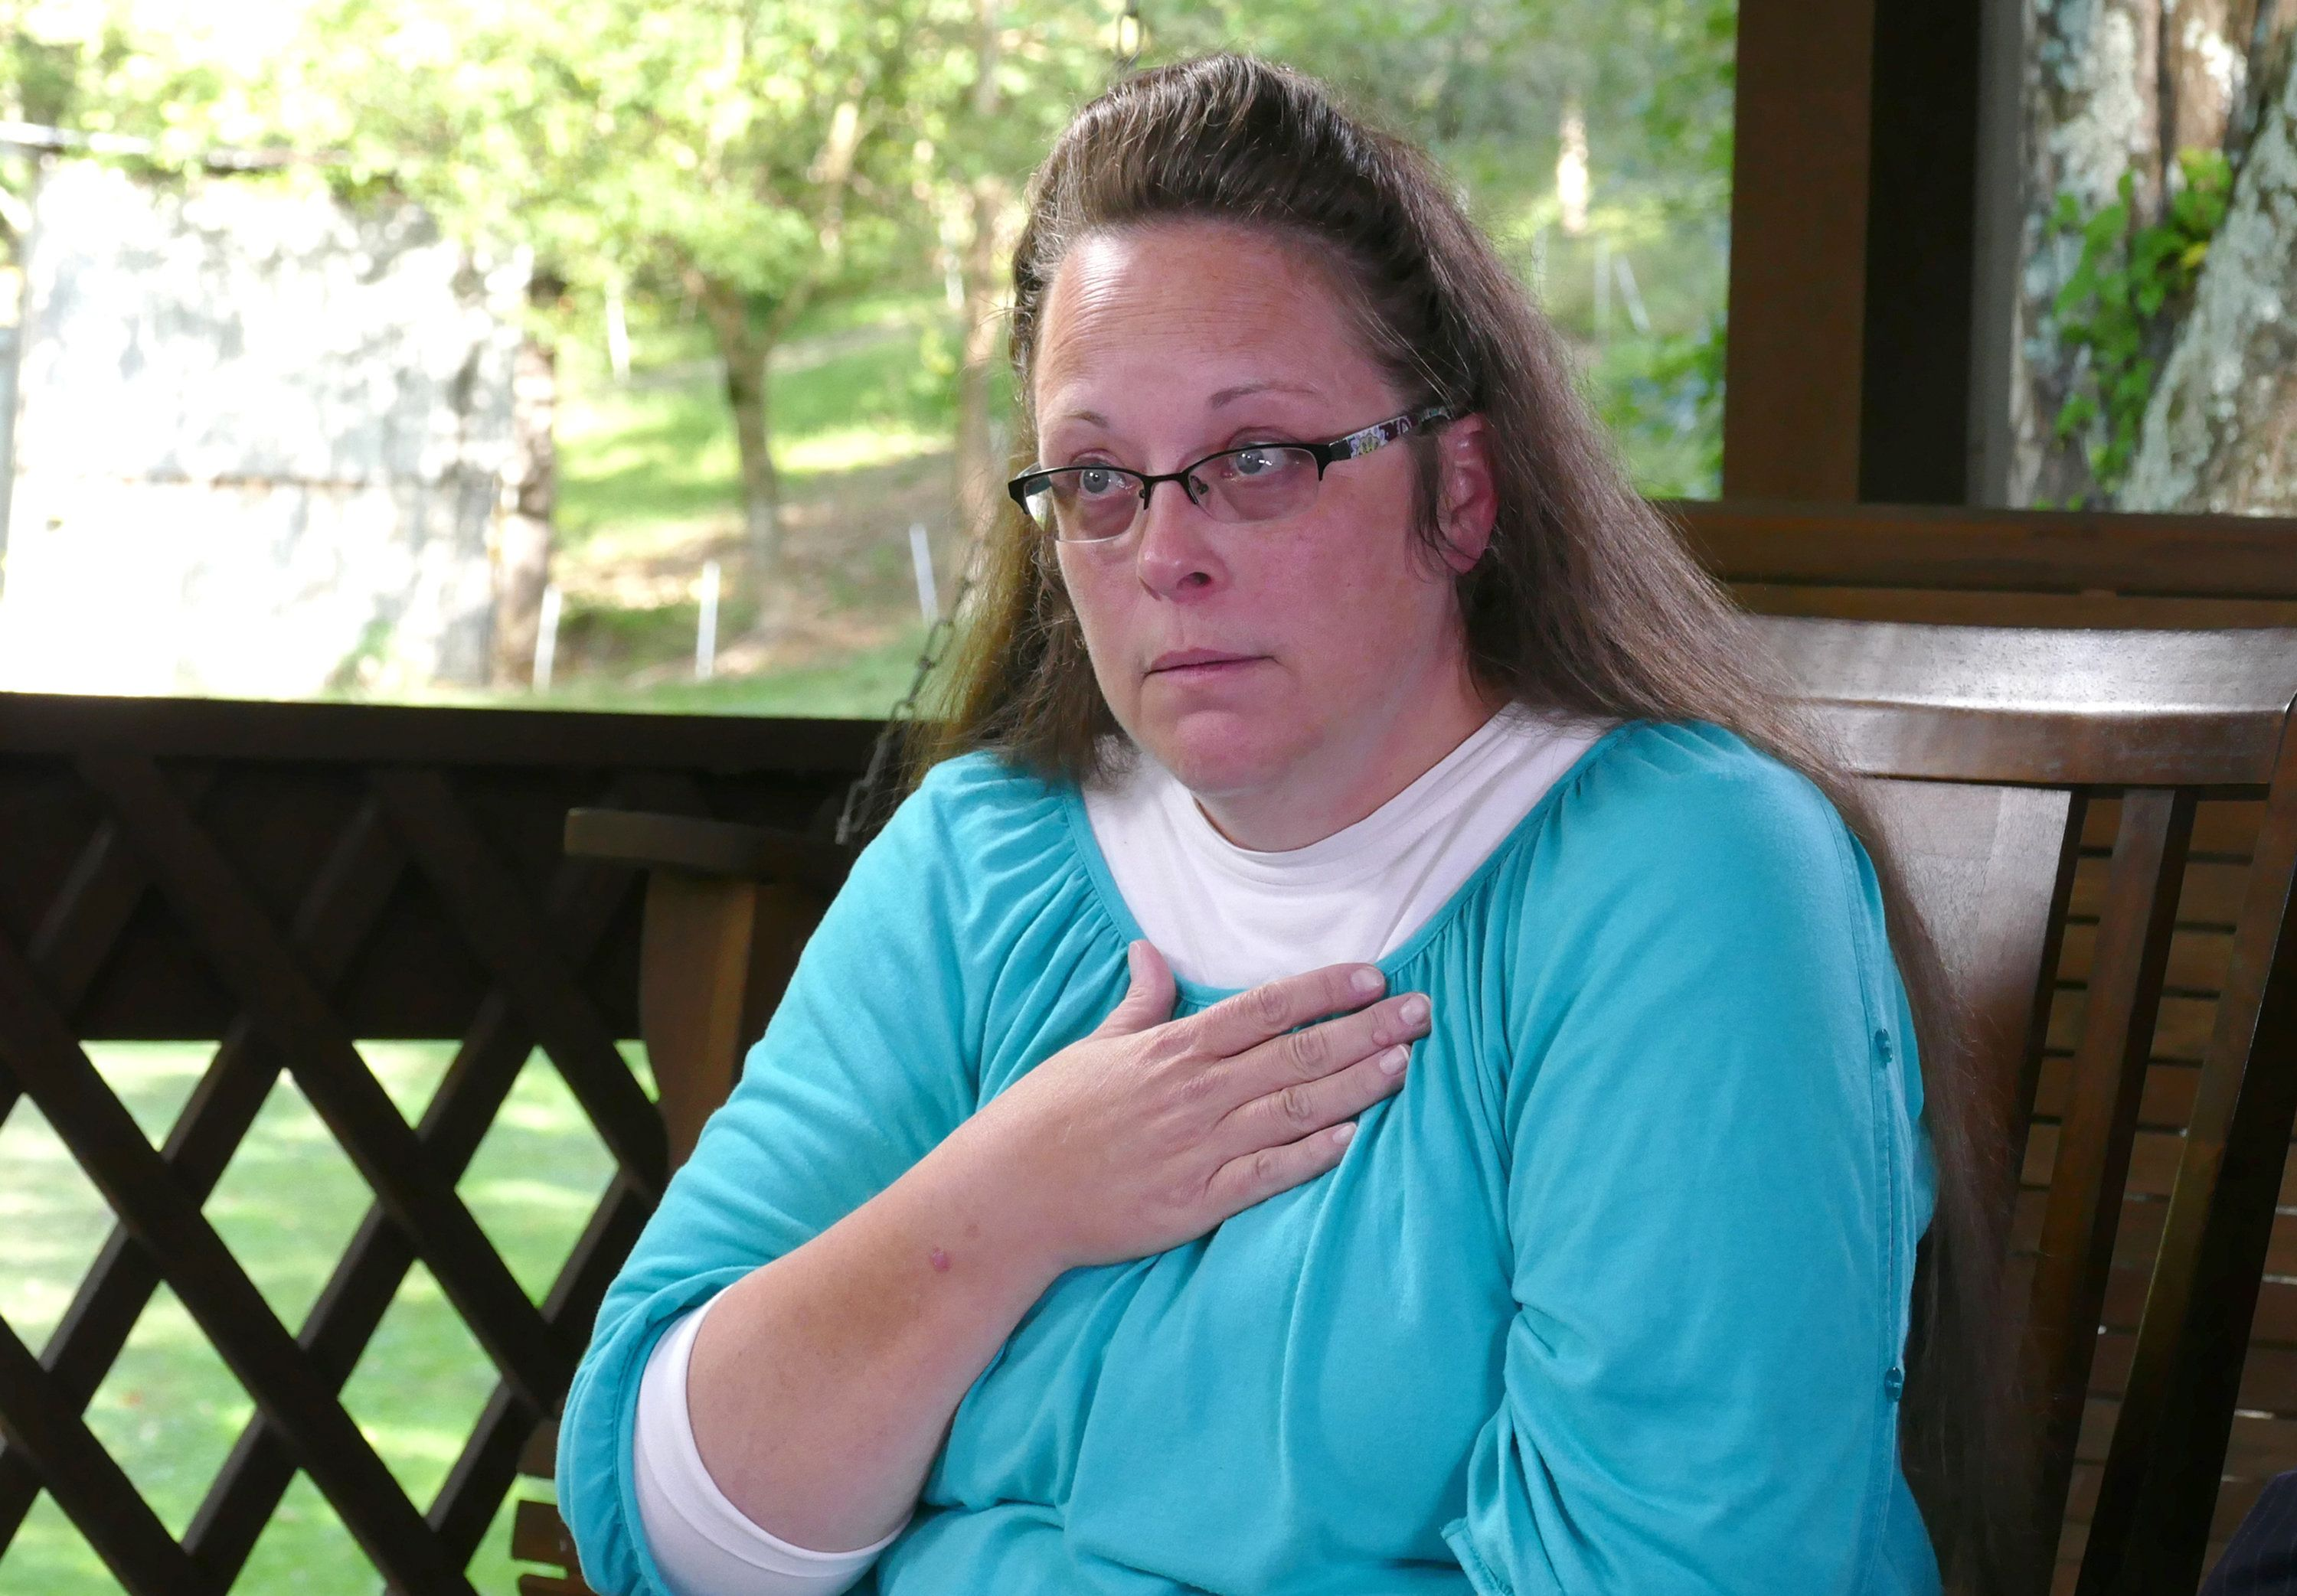 Kim Davis, a former Kentucky county clerk, refused to issue marriage licenses to same-sex couples after the Supreme Court's 2